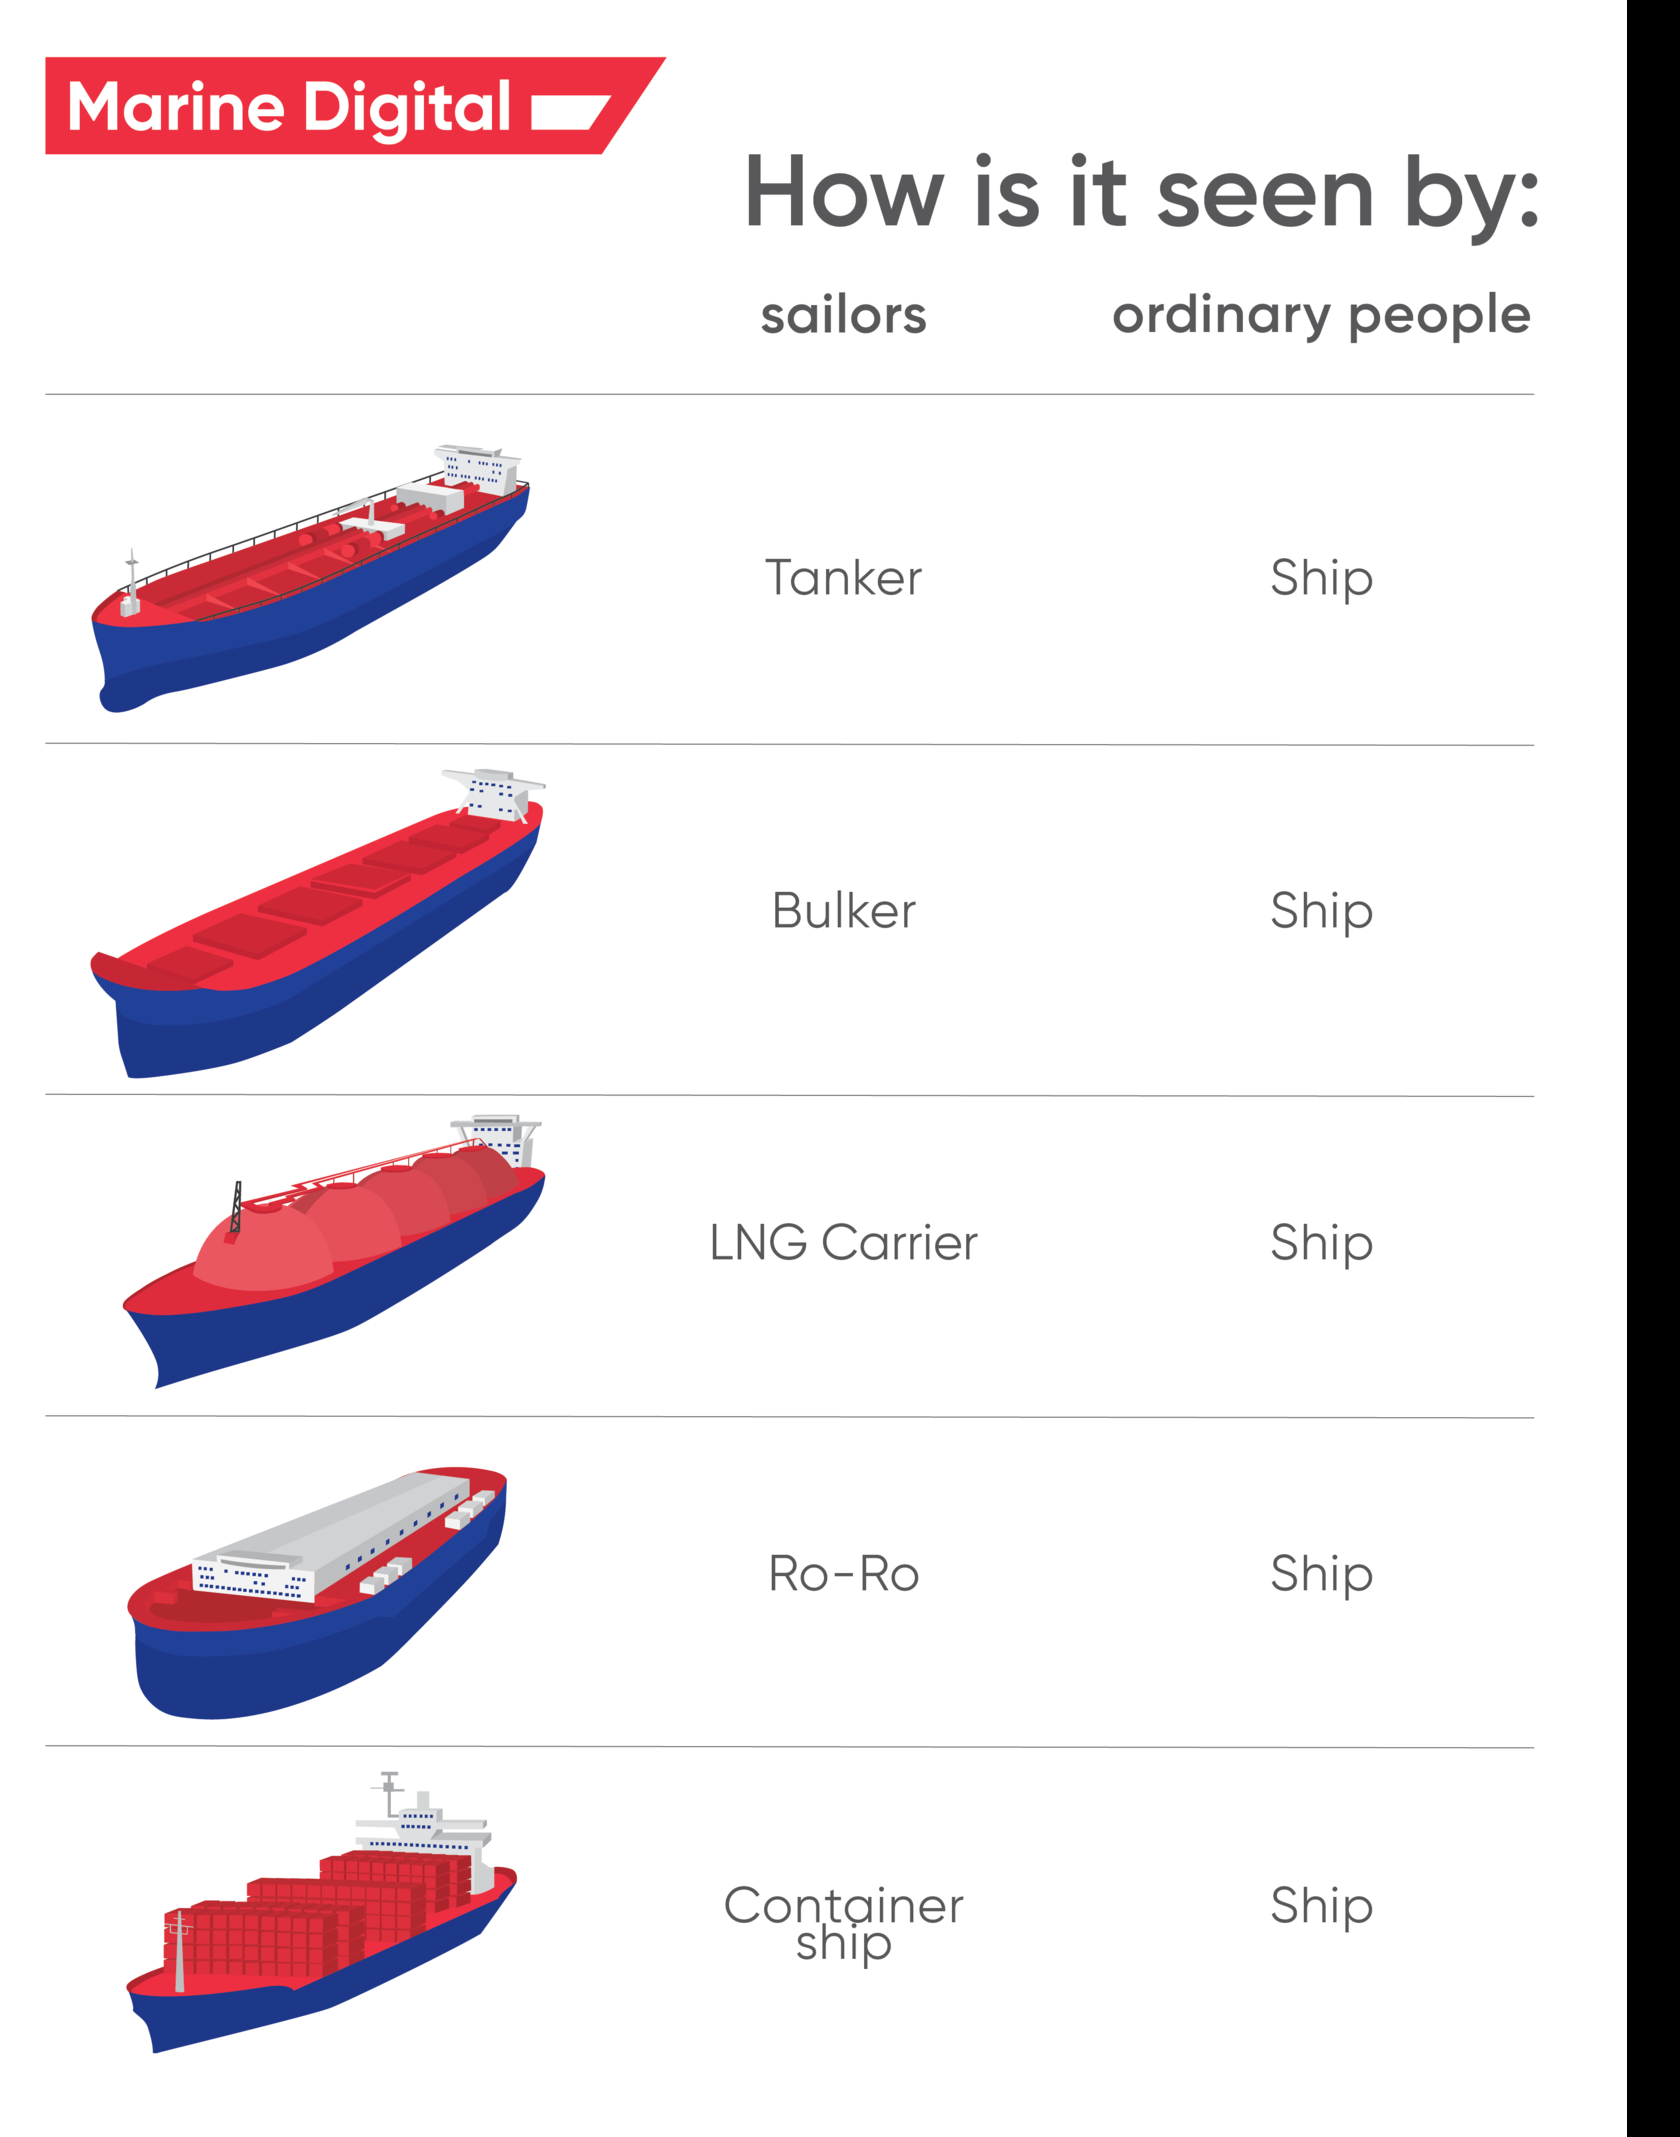 different types of vessels